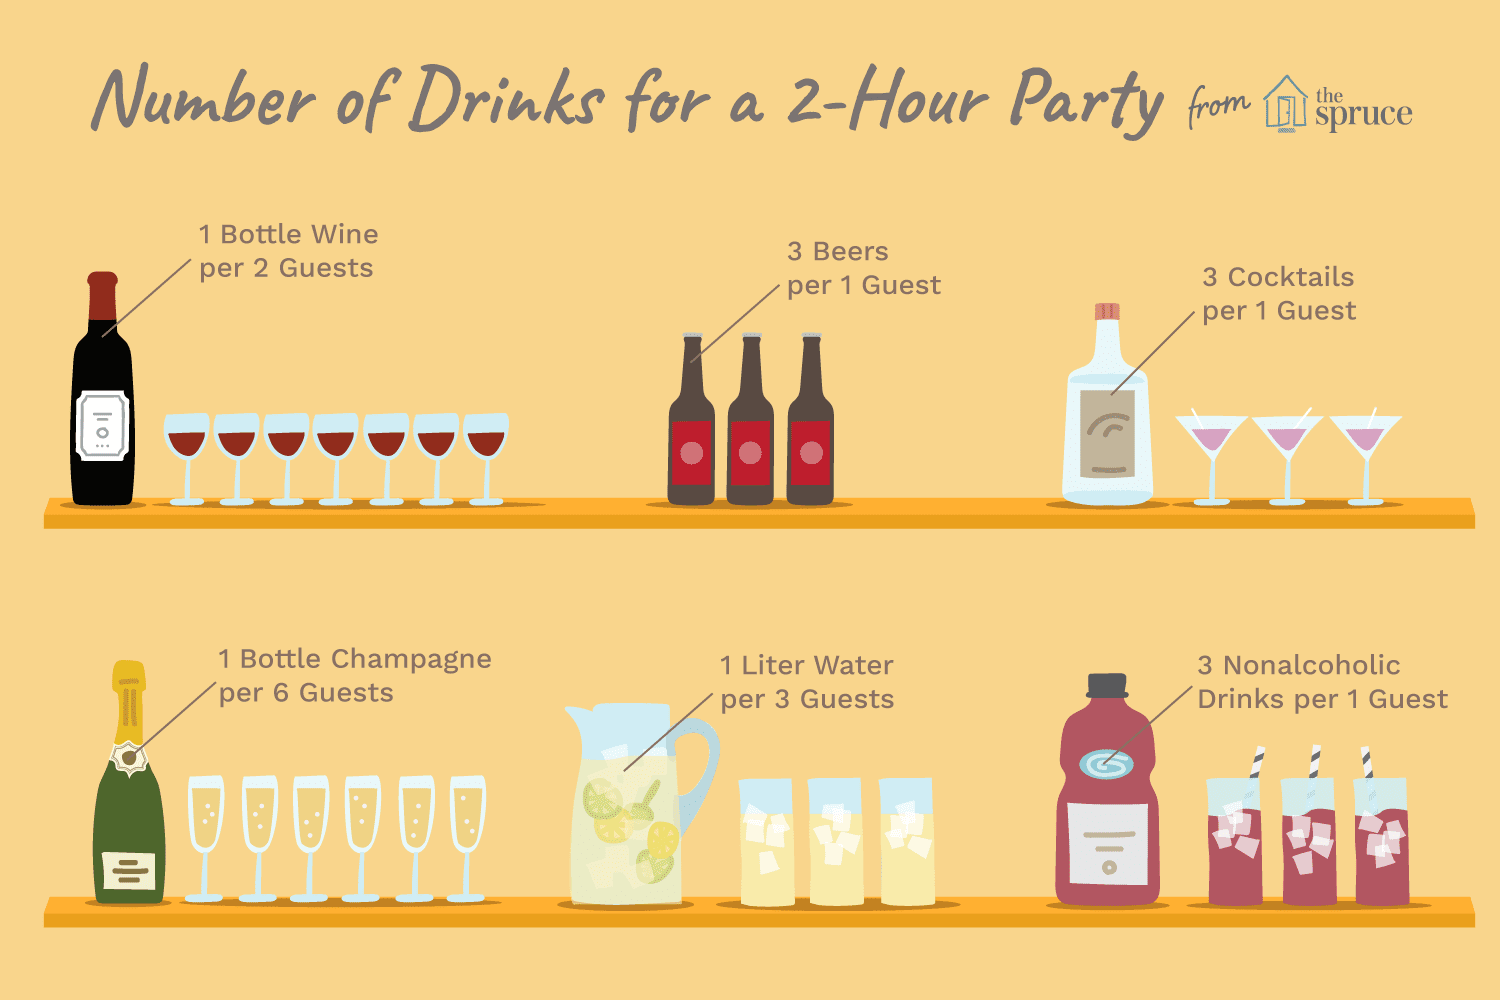 How To Calculate The Number Of Drinks To Buy For A Party